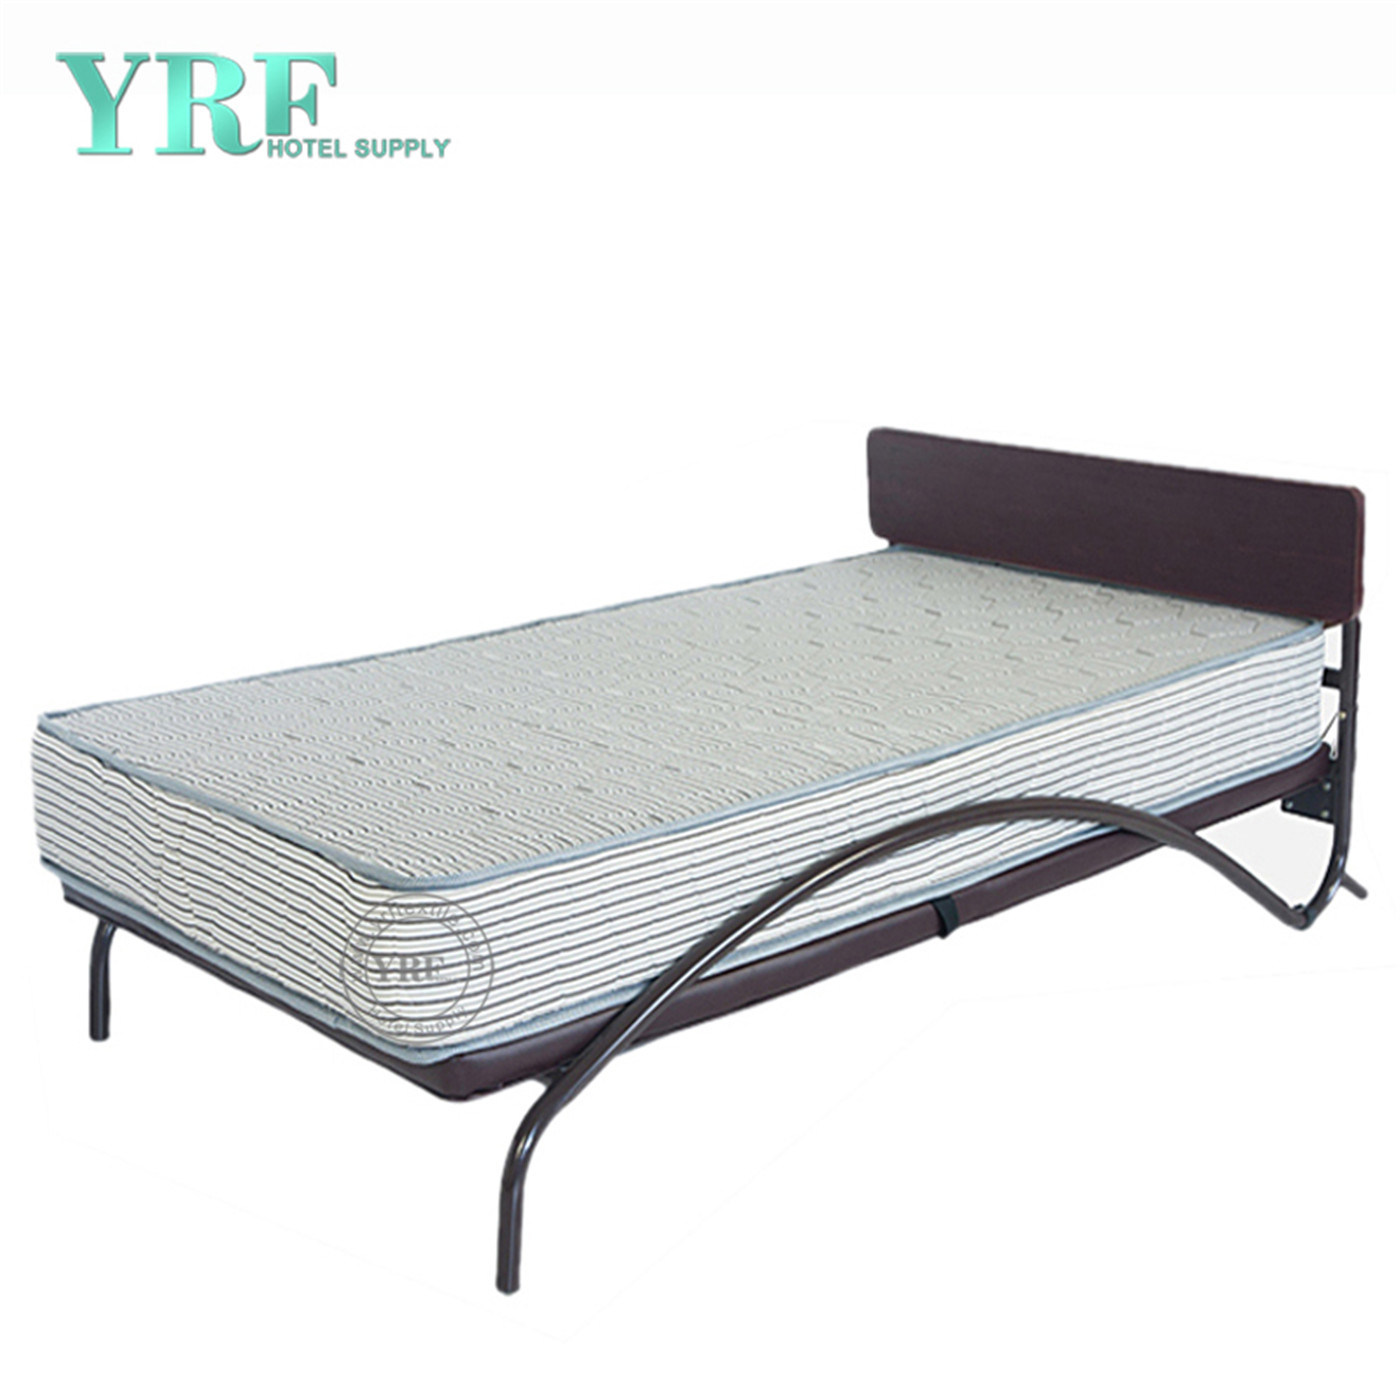 China Hot Style Wholesale Folding Mattress Bed Bedroom Furniture Portable For Hotel China Wholesale Folding Bed Sofa Bed